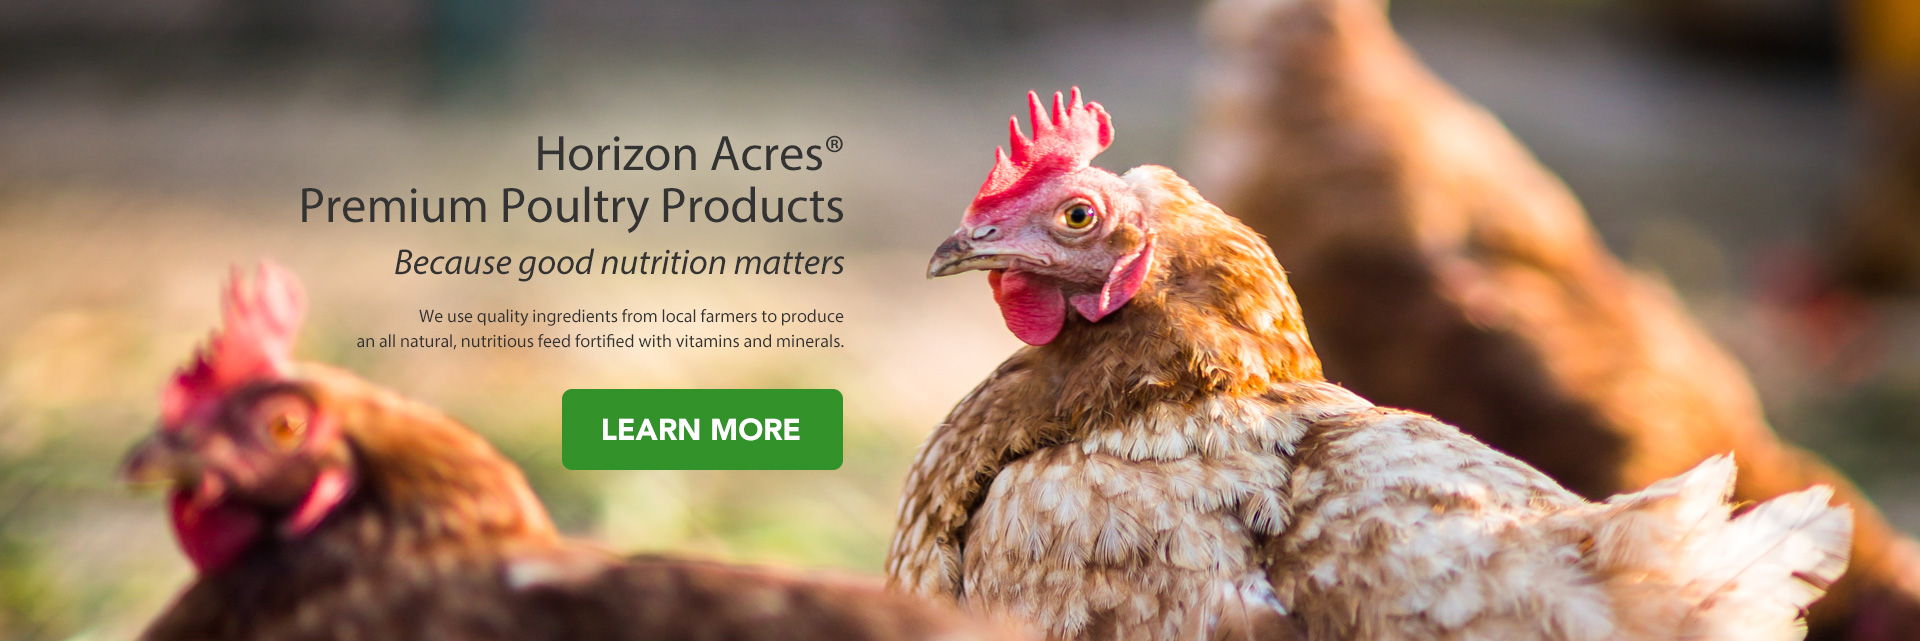 Horizon Acres Premium Poultry Products